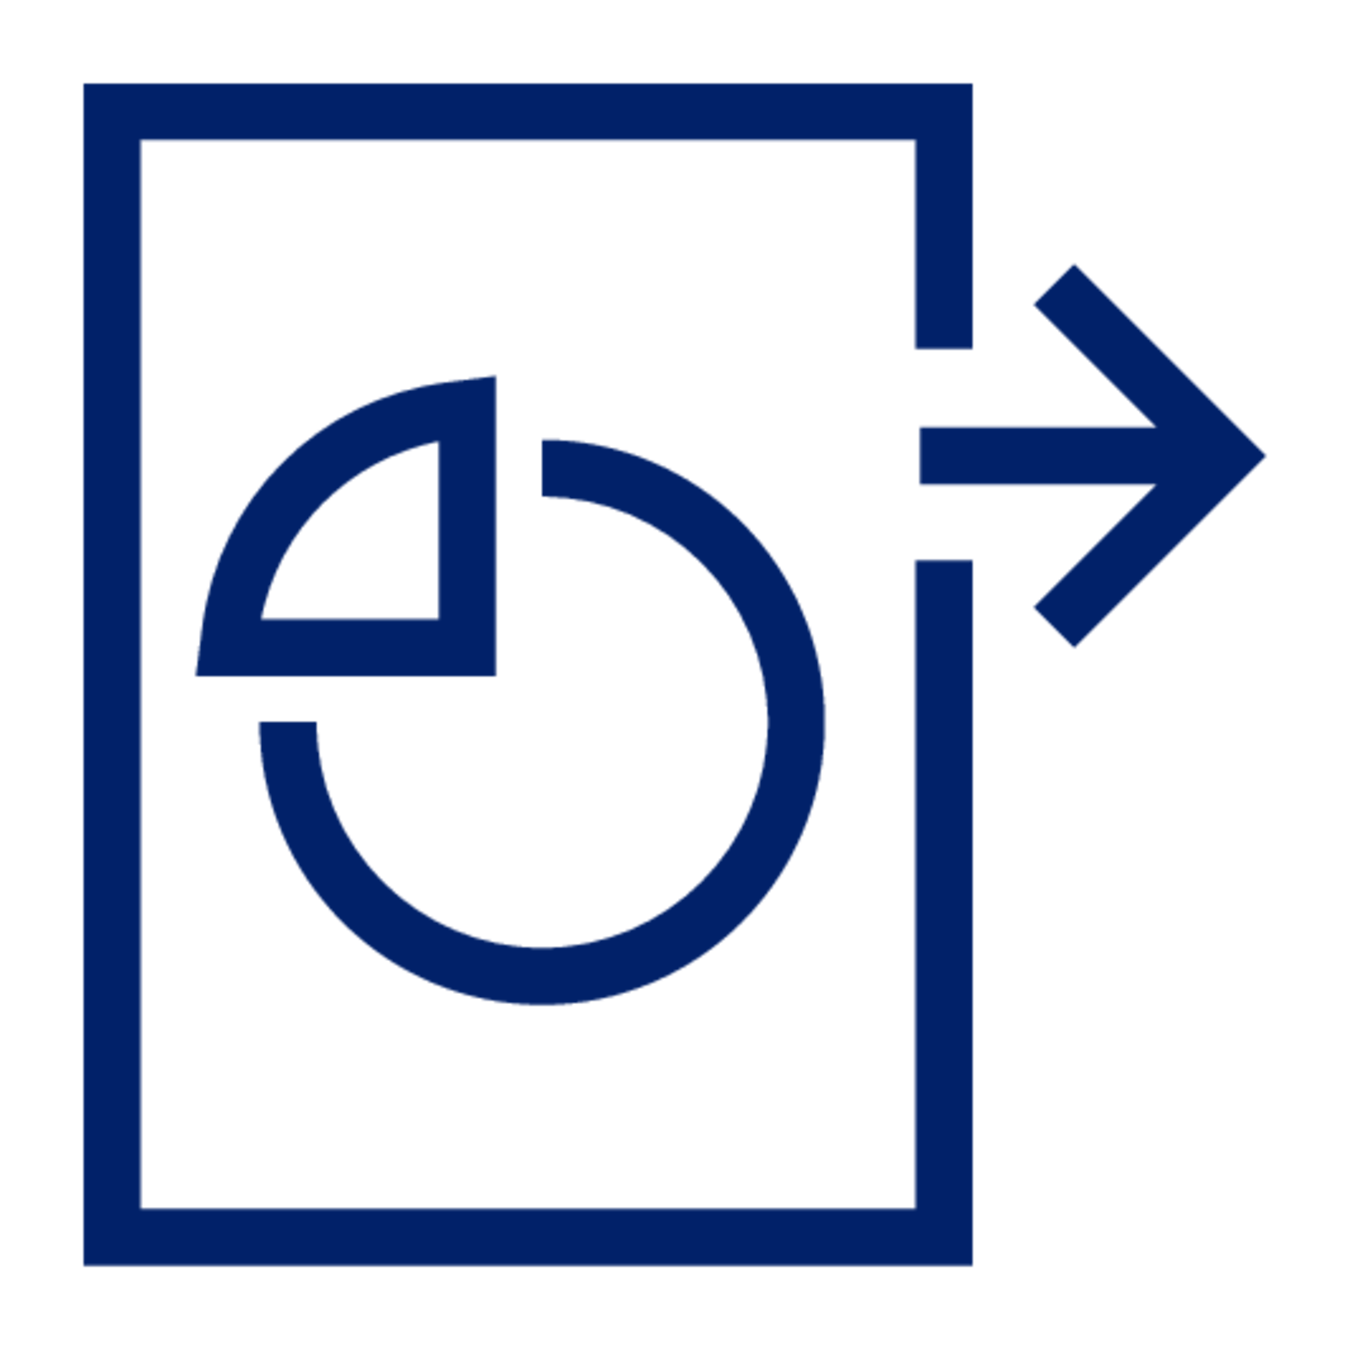 A blue icon of a document with a pie chart, showing data moving forward.